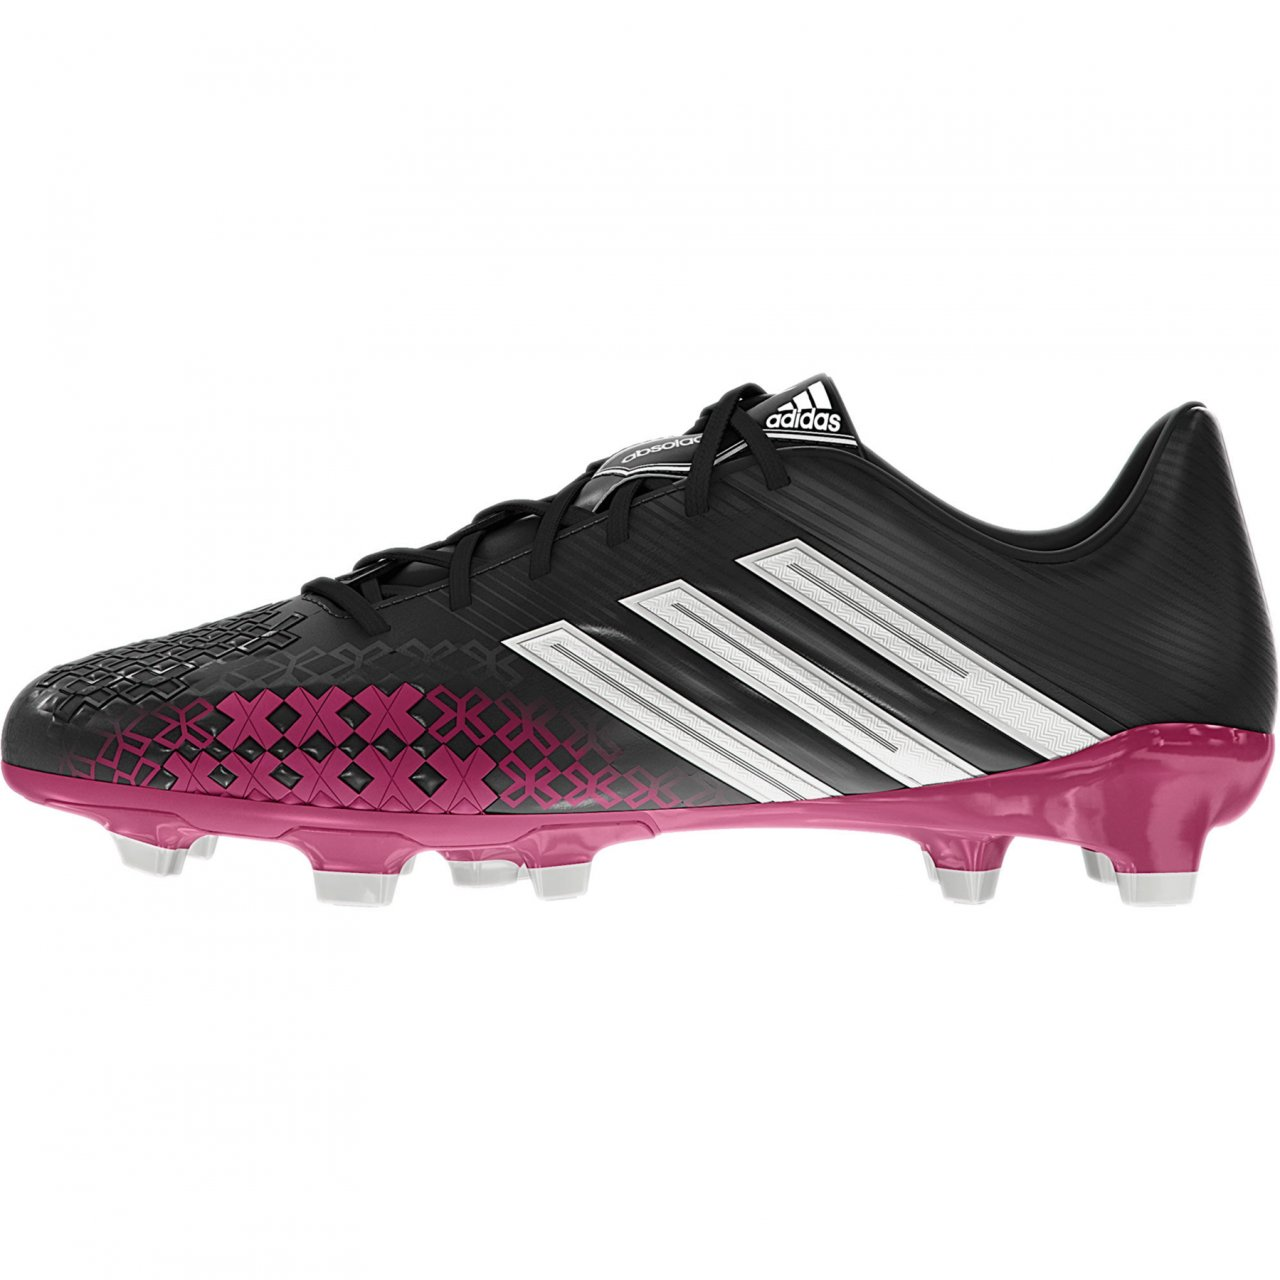 sale retailer 61a88 1bcf7 adidas Predator Absolado LZ TRX Firm Ground Football Boots Junior-11 J   Amazon.co.uk  Sports   Outdoors